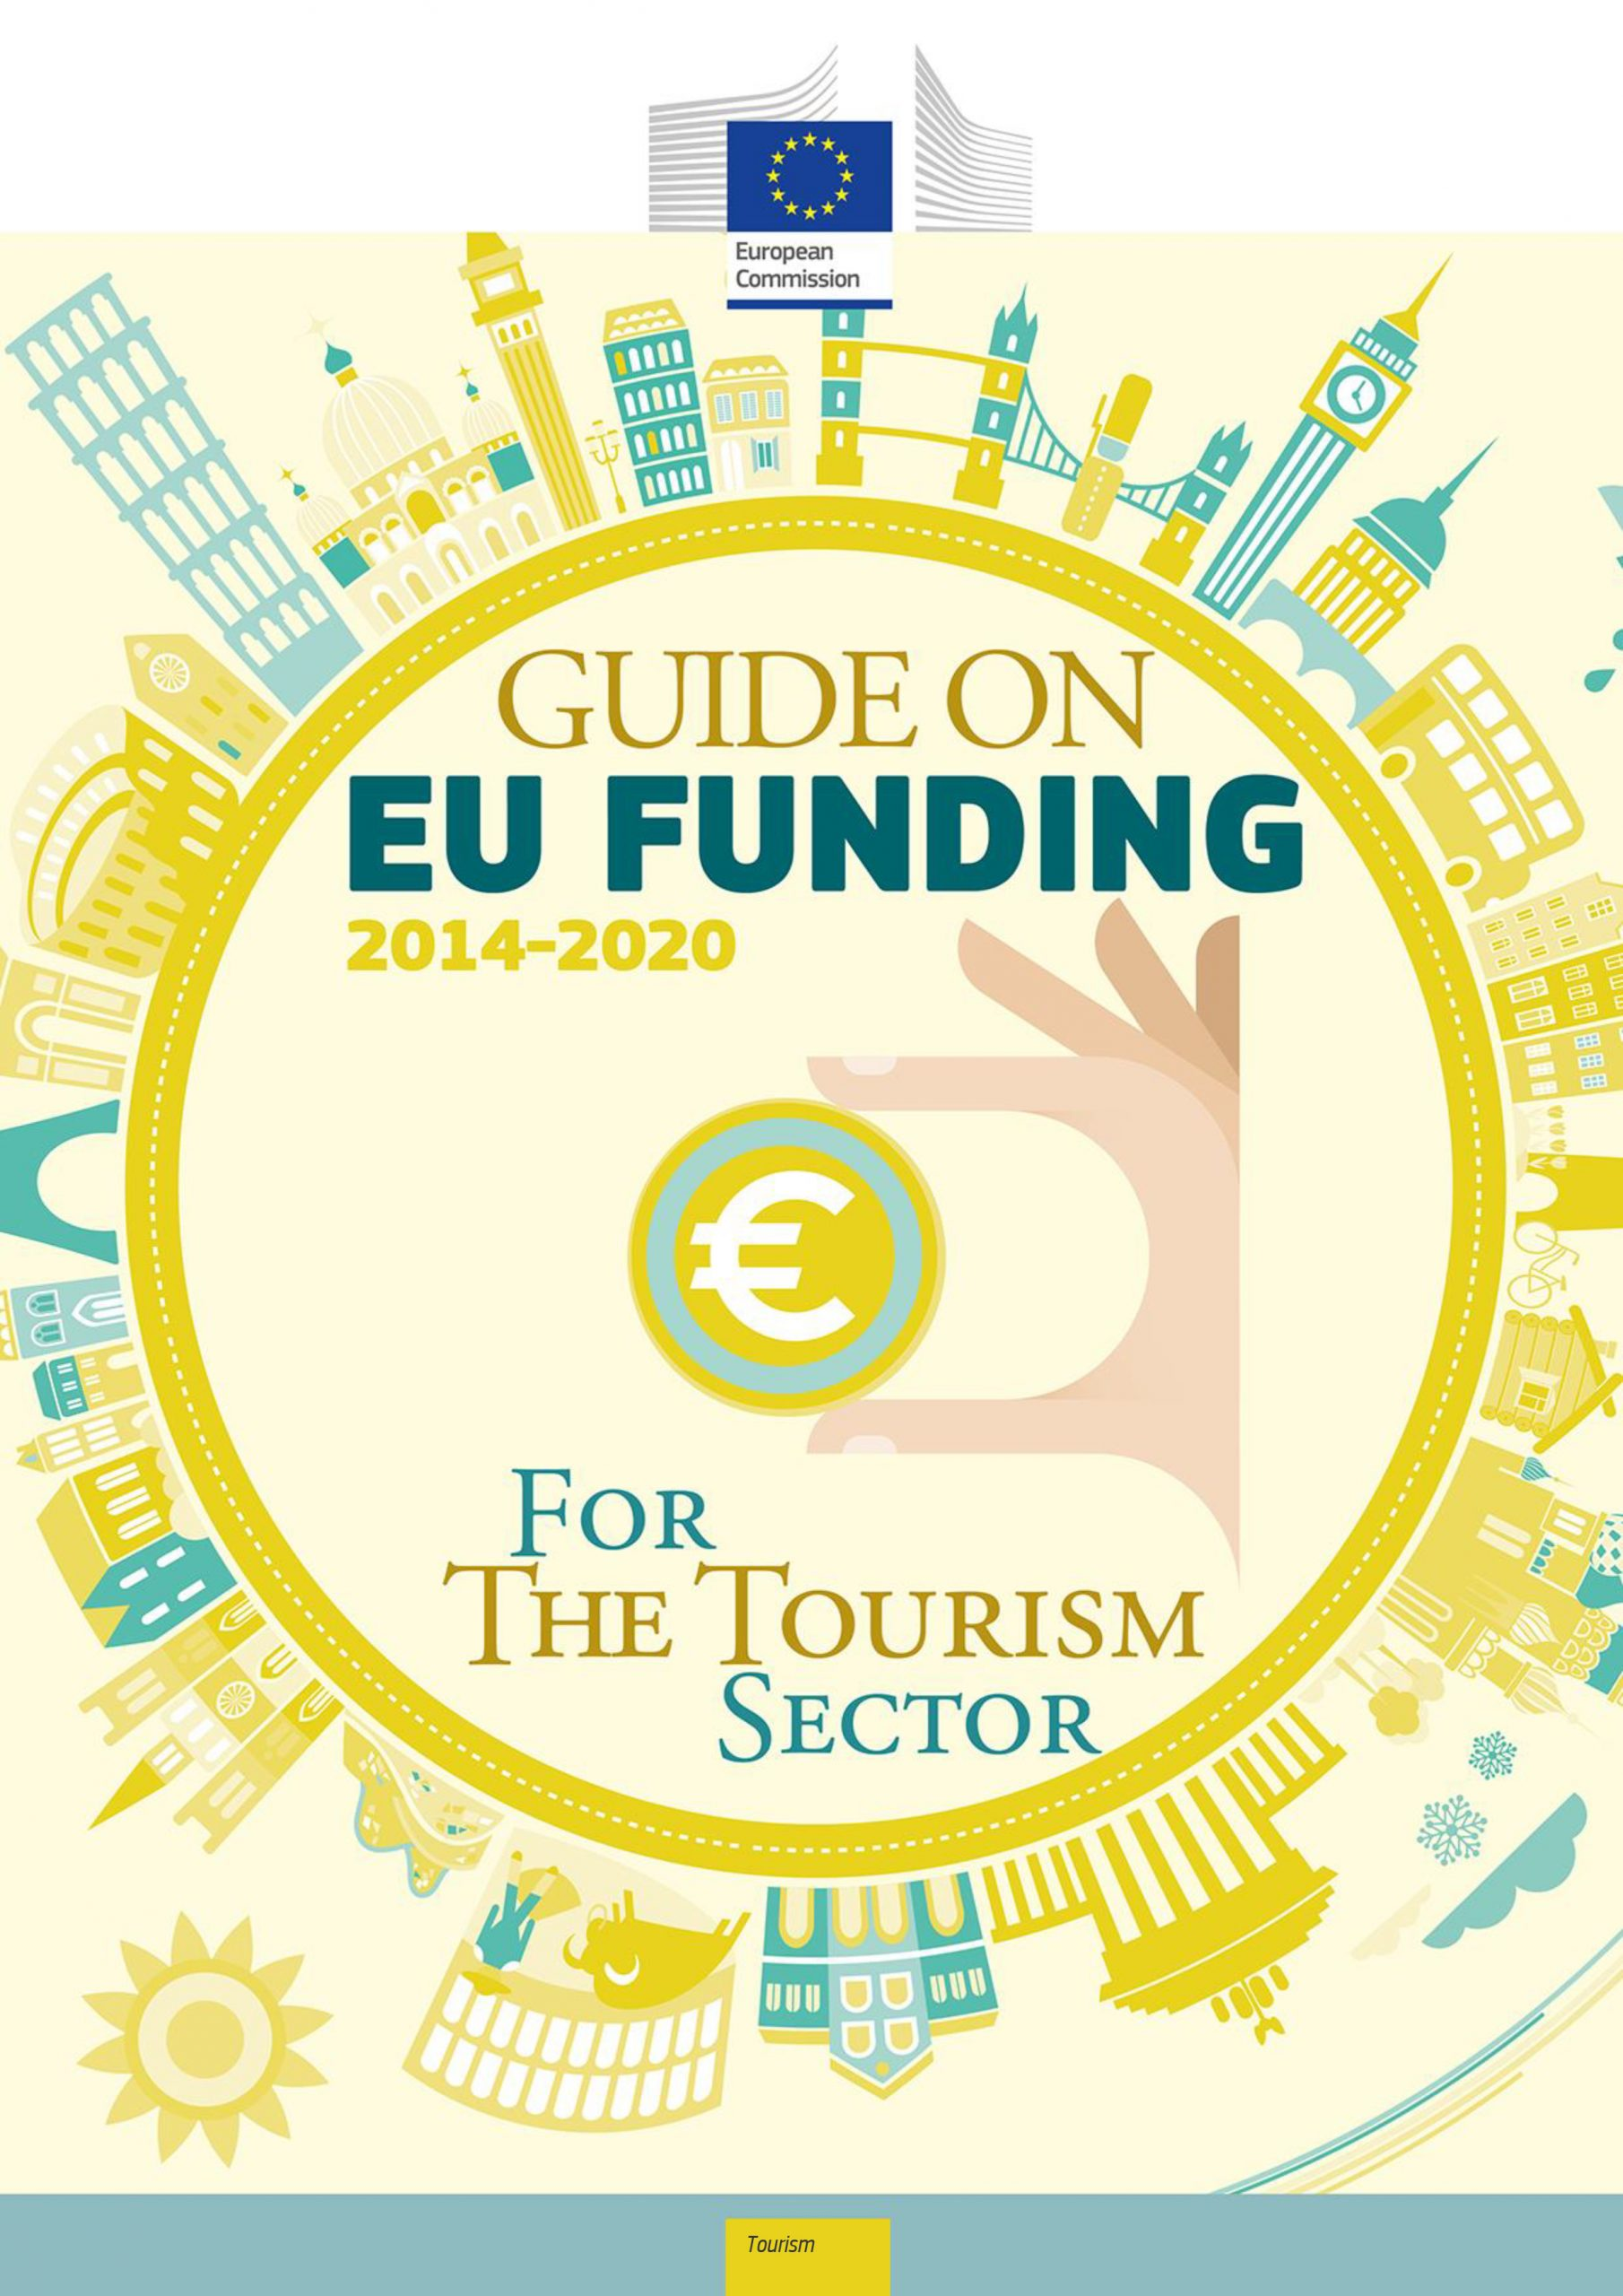 Guide on EU funding for the tourism sector